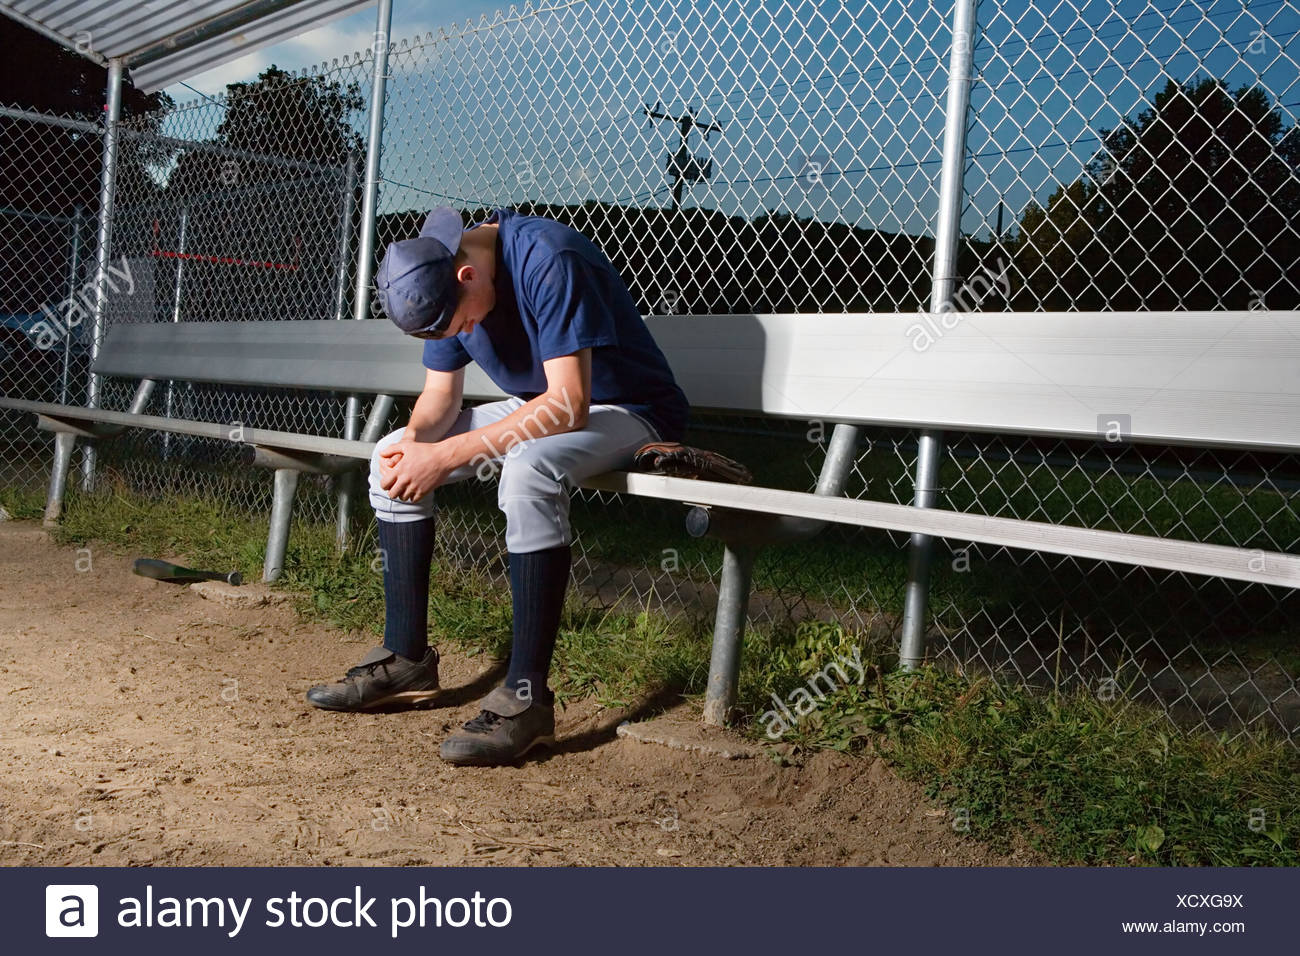 Teenage boy watching from the sidelines - Stock Image